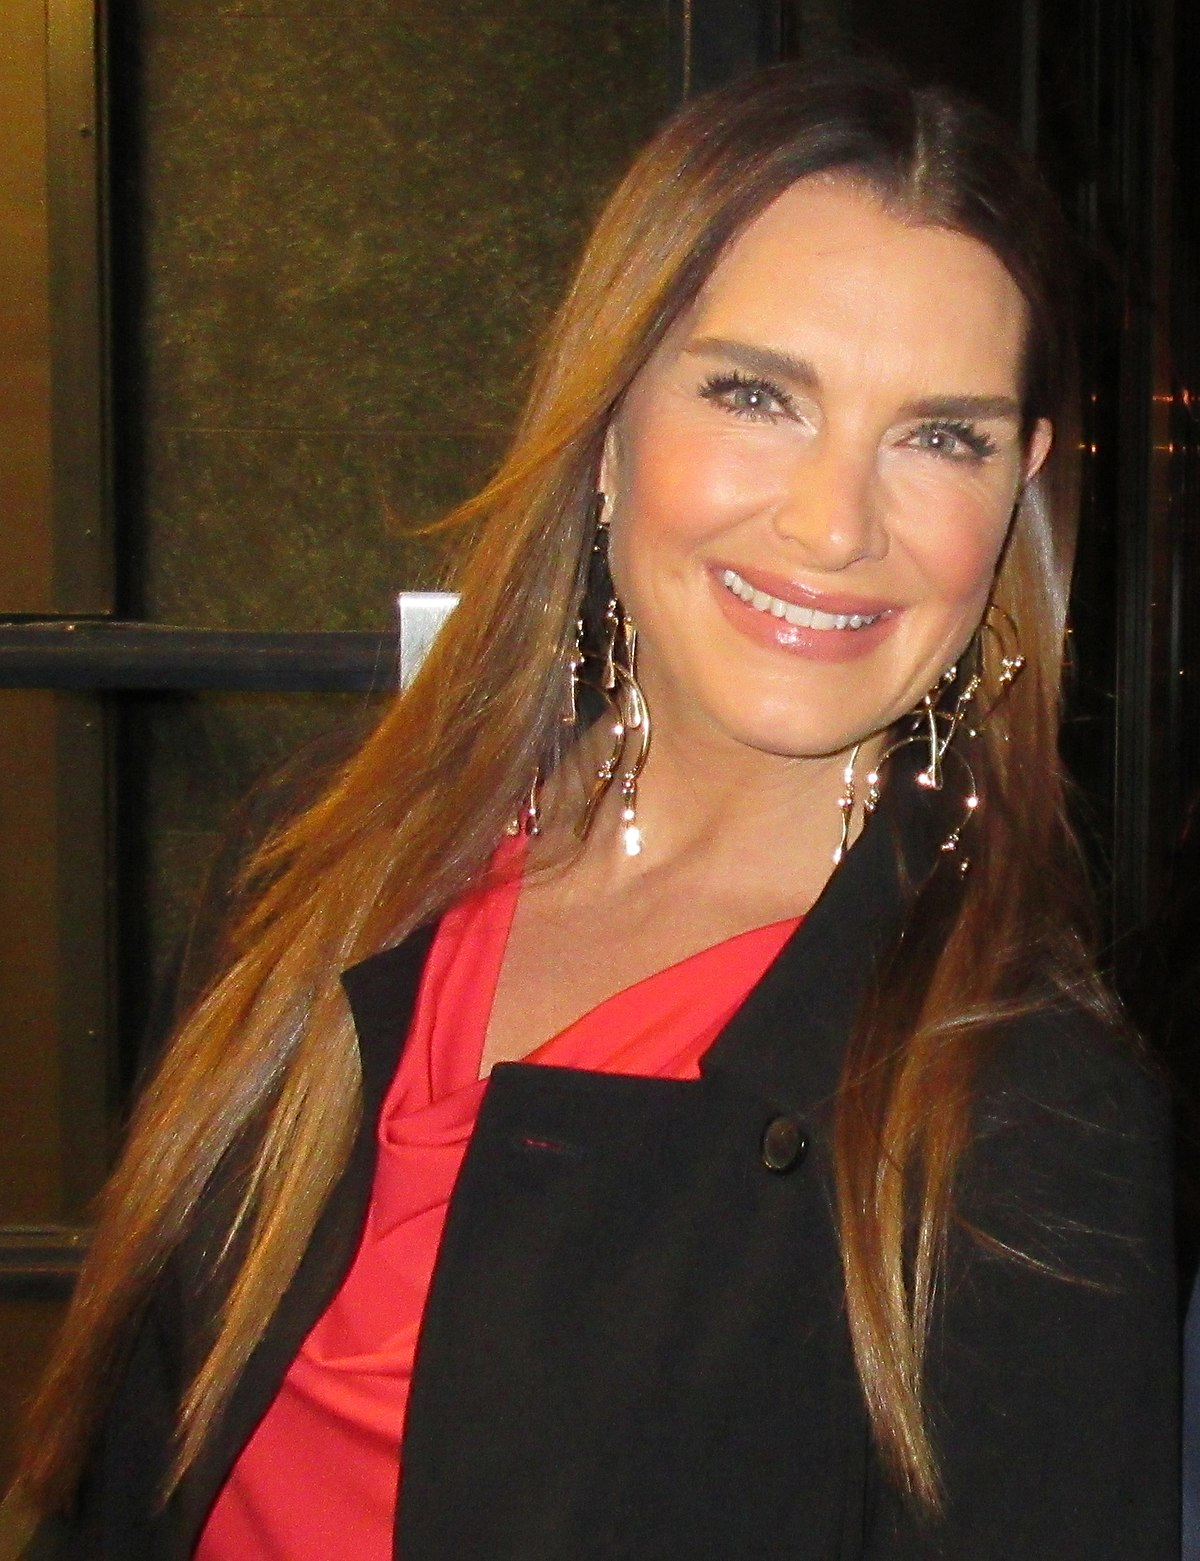 Brooke Shields Sugar N Spice Full Pictures - Hollywood